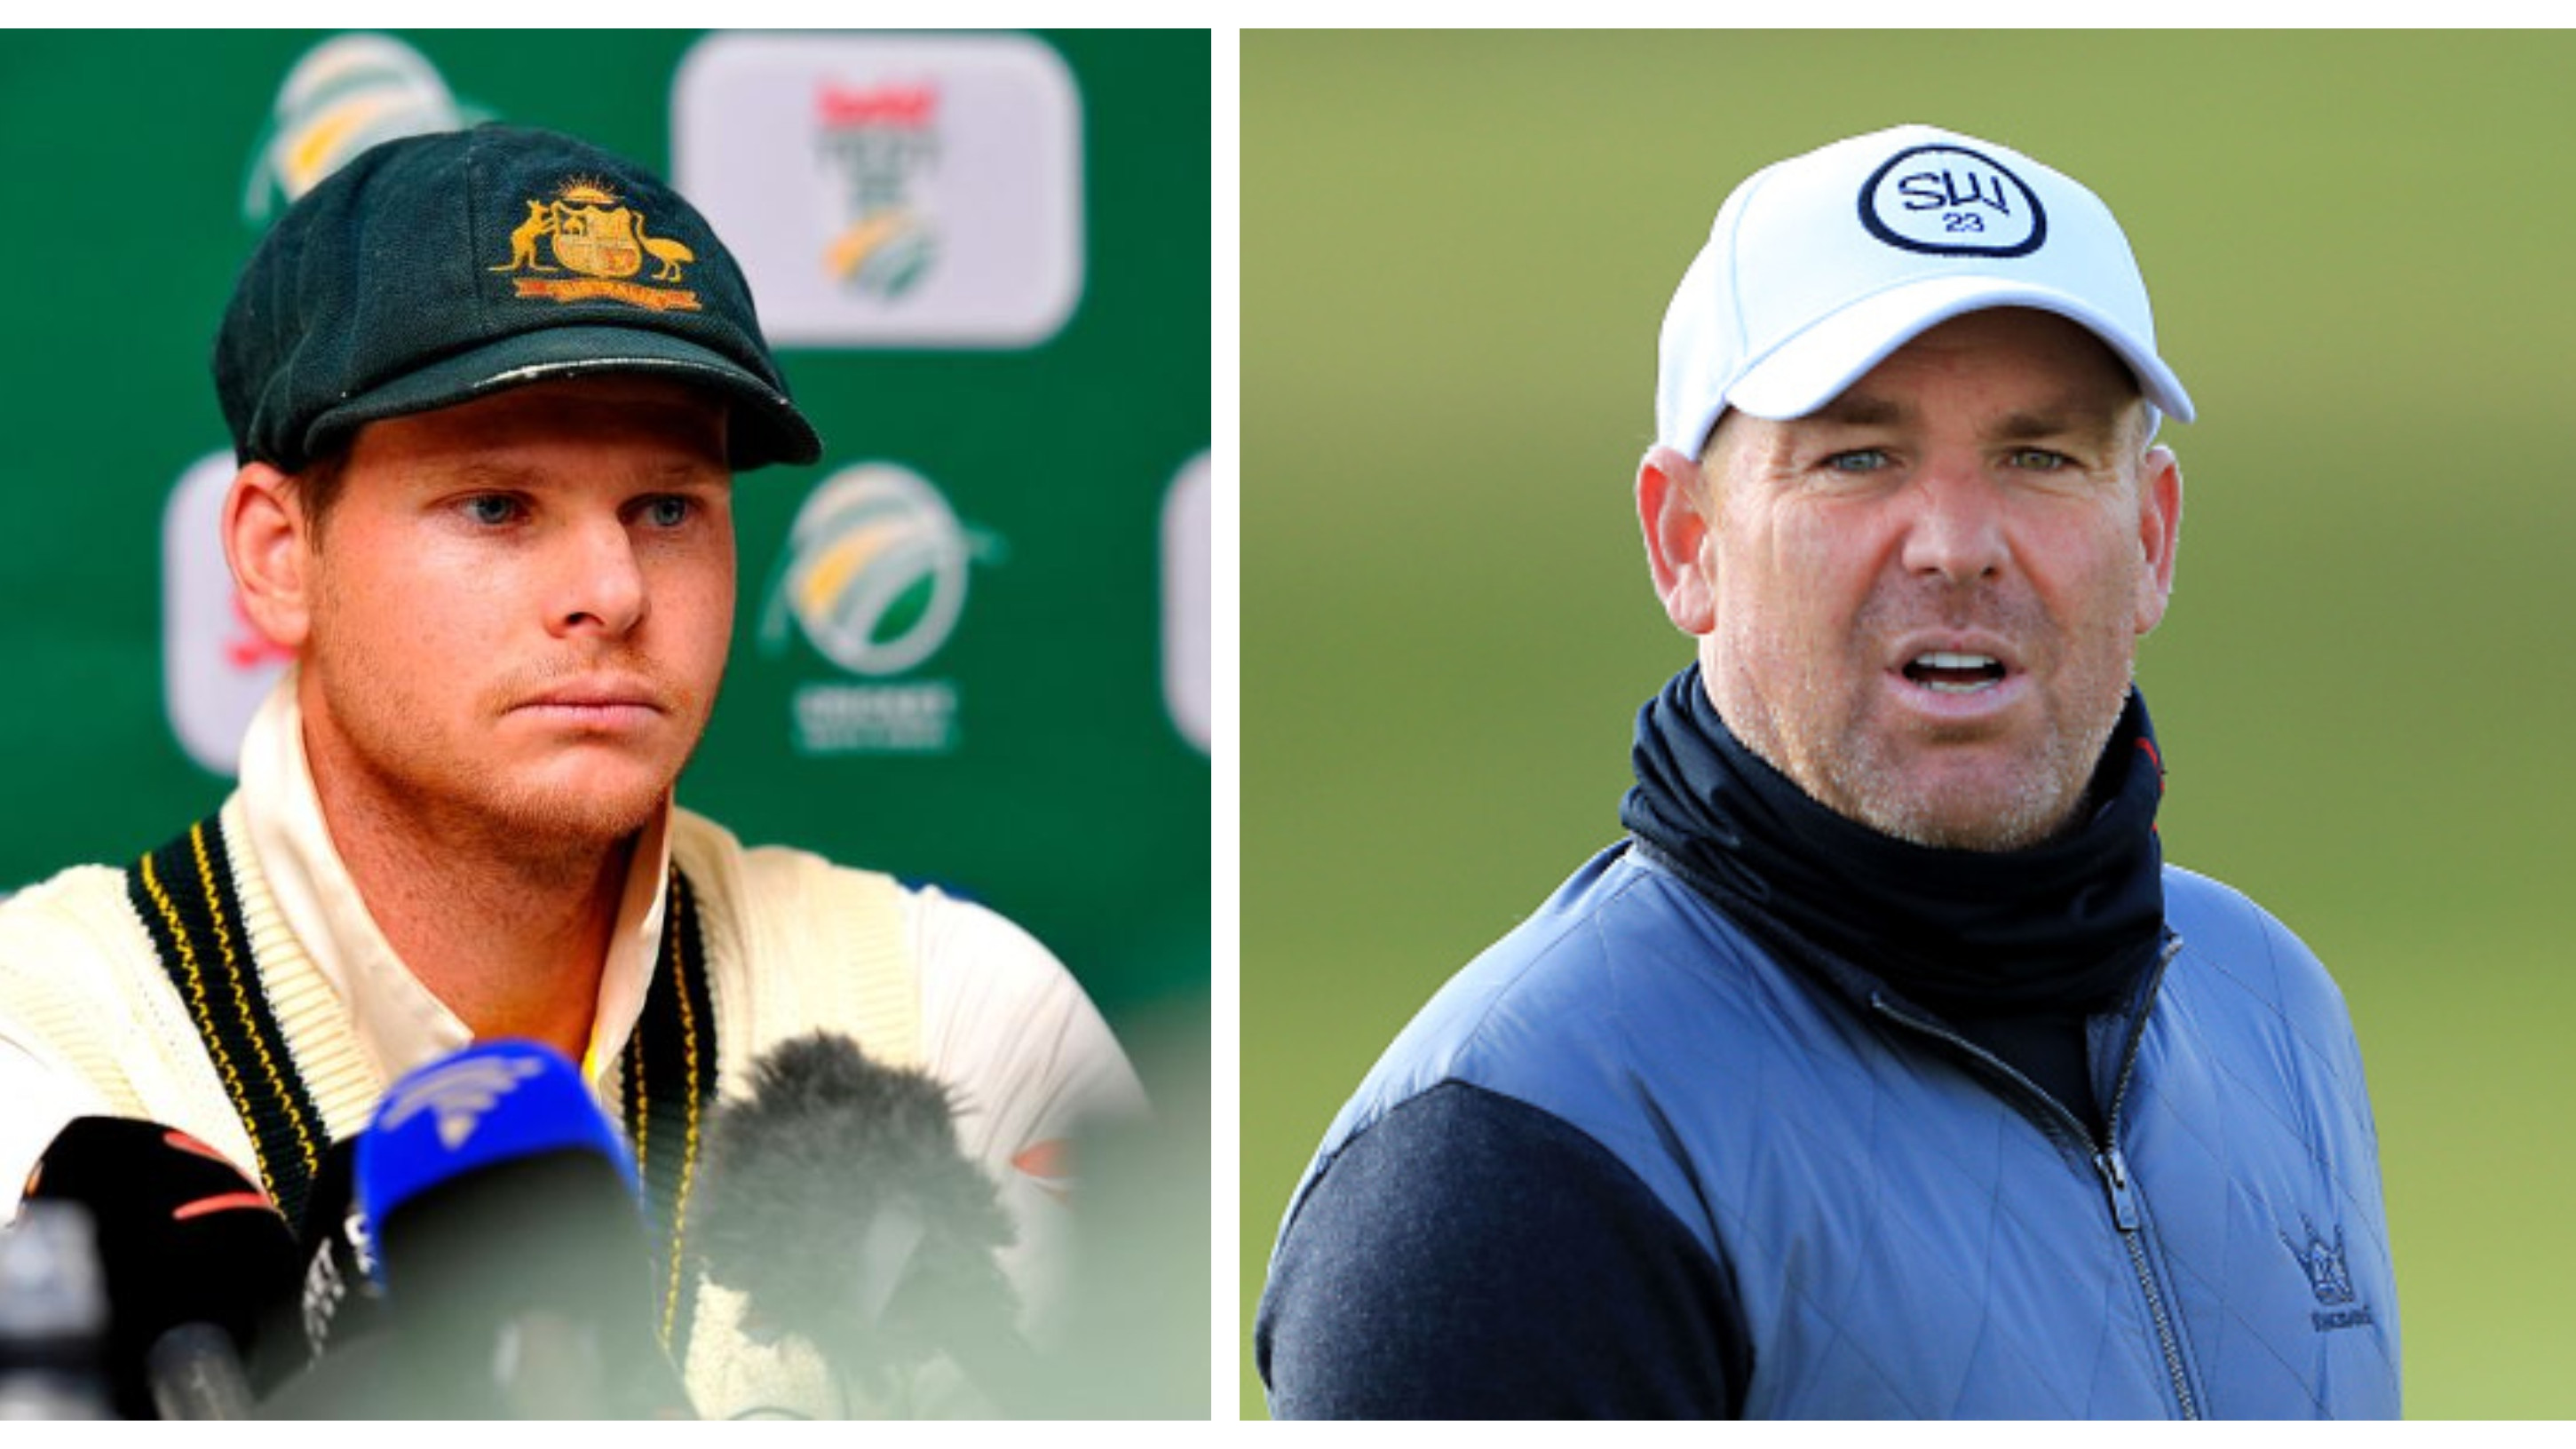 Shane Warne defends Steve Smith in the ball-tampering saga